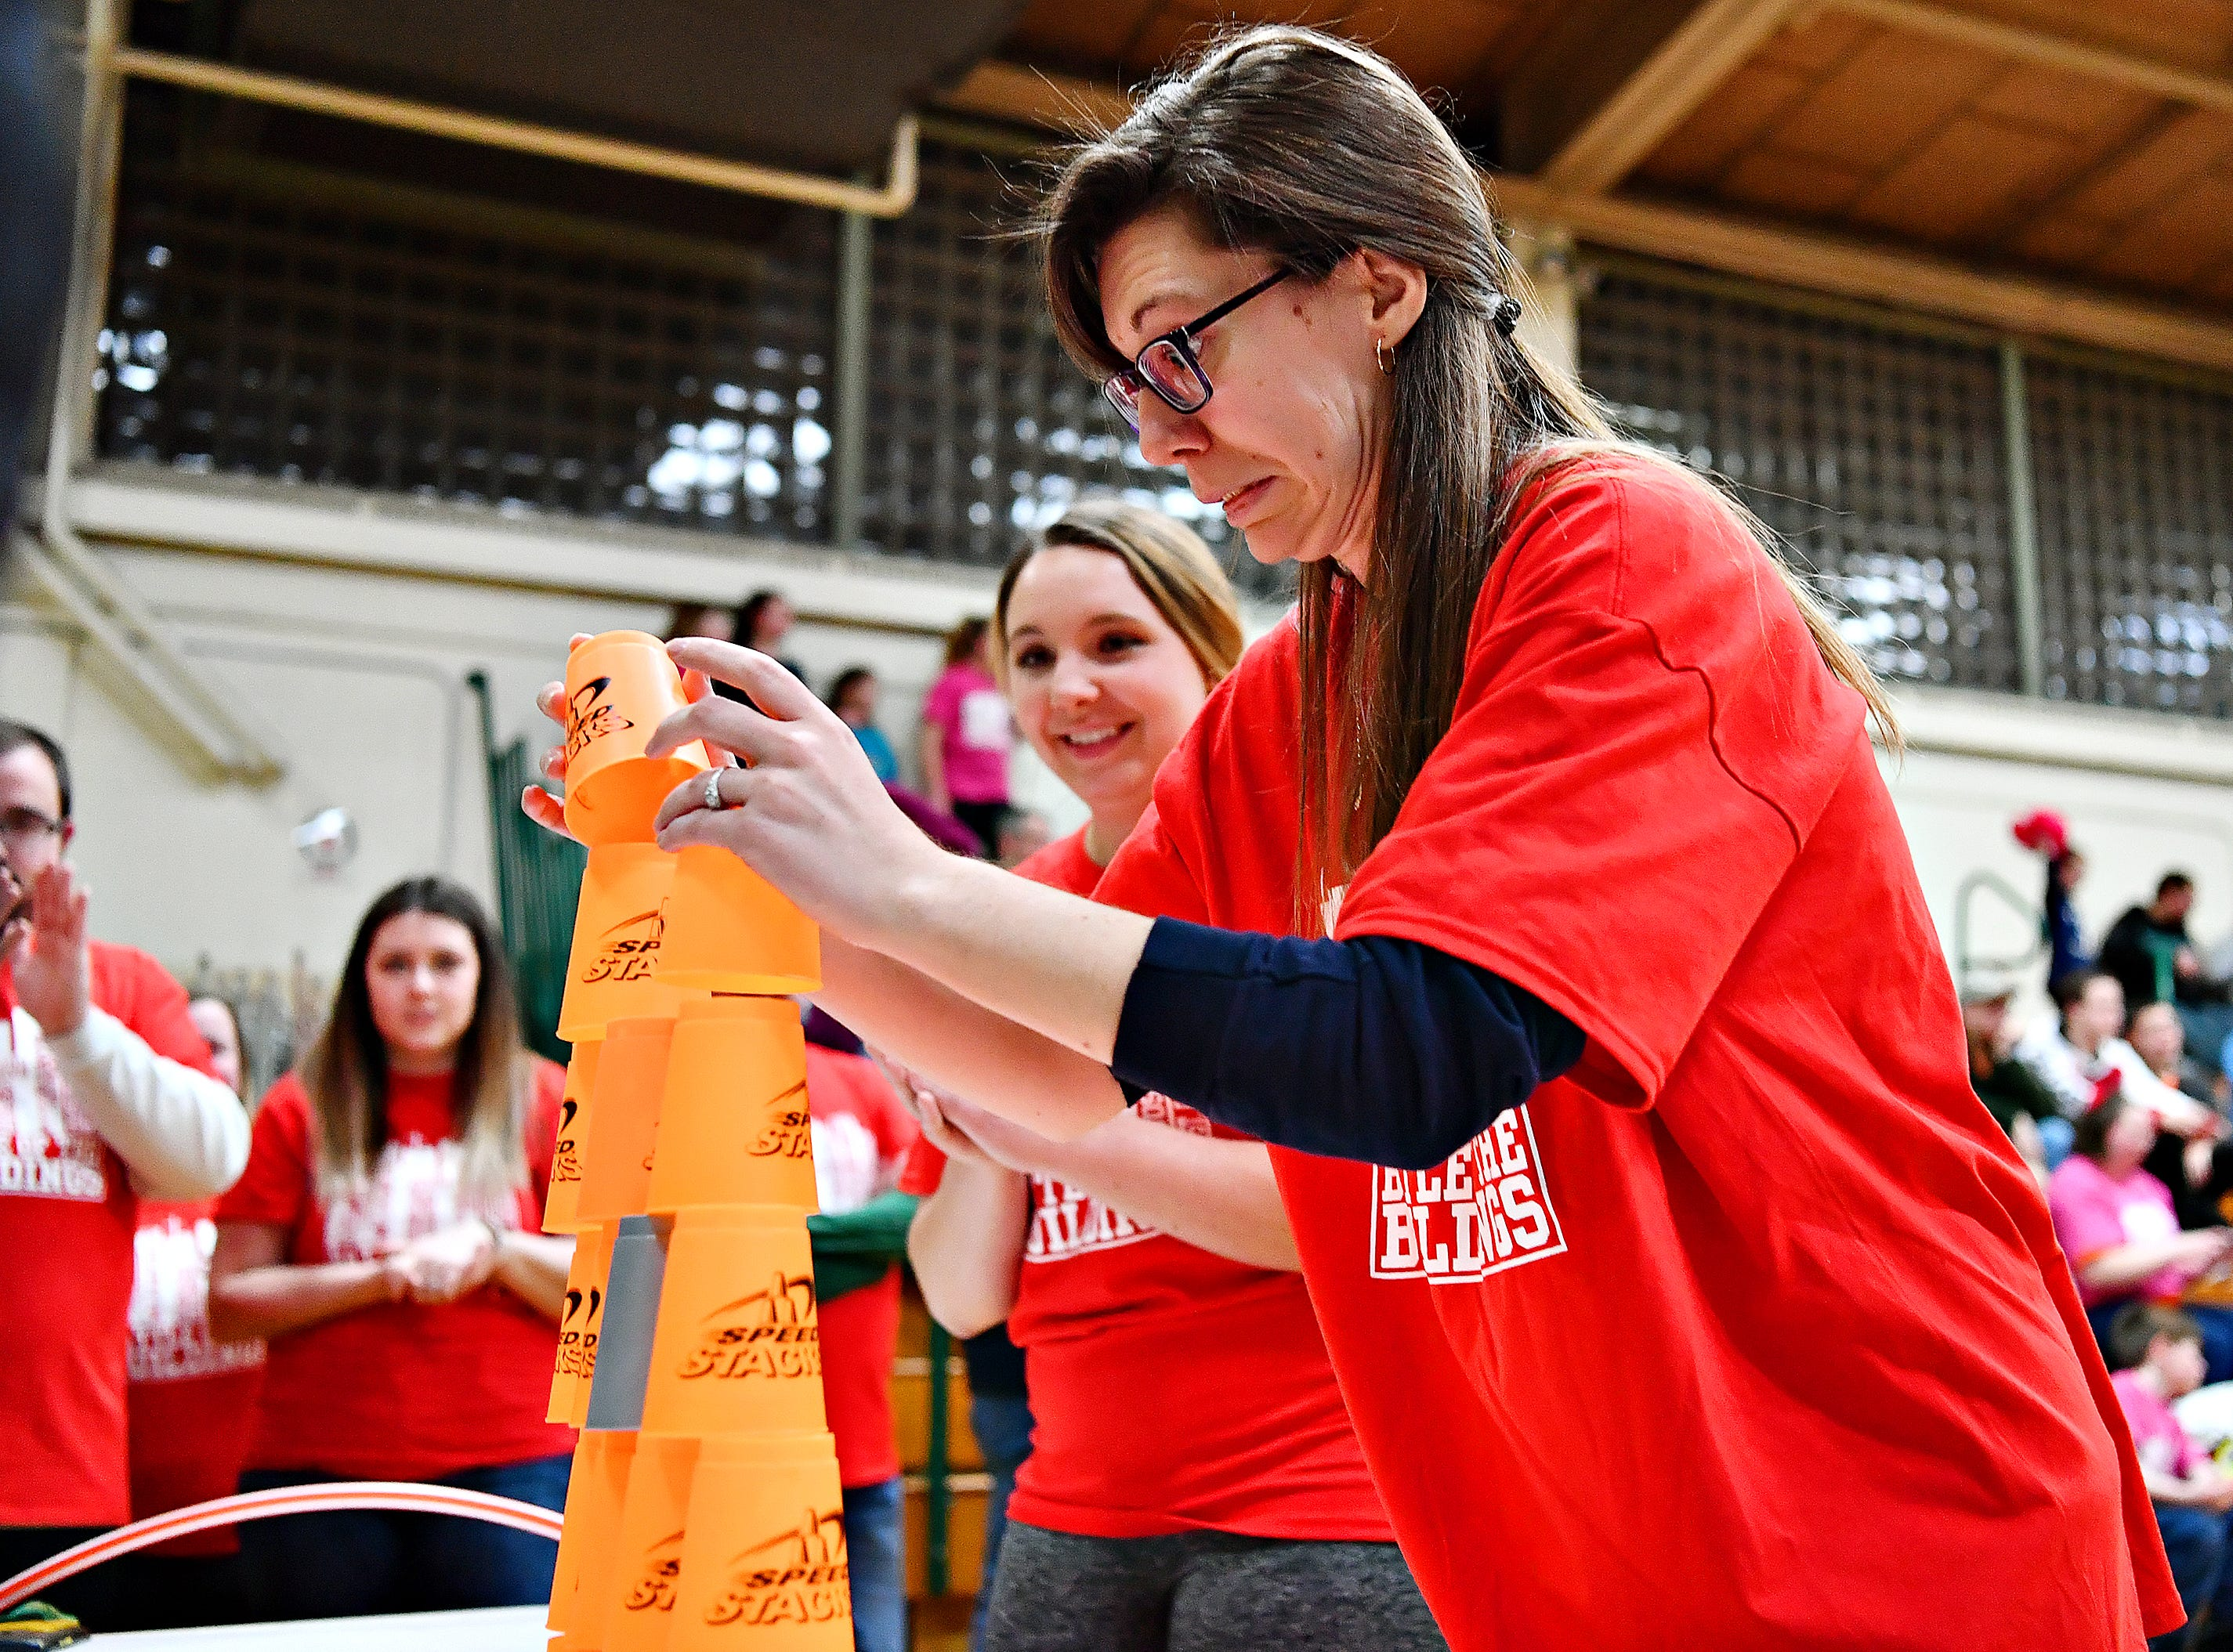 York Catholic guidance counselor Kelsey Khan, back, looks on as she and eighth-grade English teacher and seventh-grade religion teacher Christa Laczkoskic compete in the Stack Attack competition during Battle of the Buildings at York Catholic High School in York City, Saturday, Jan. 26, 2019. Dawn J. Sagert photo